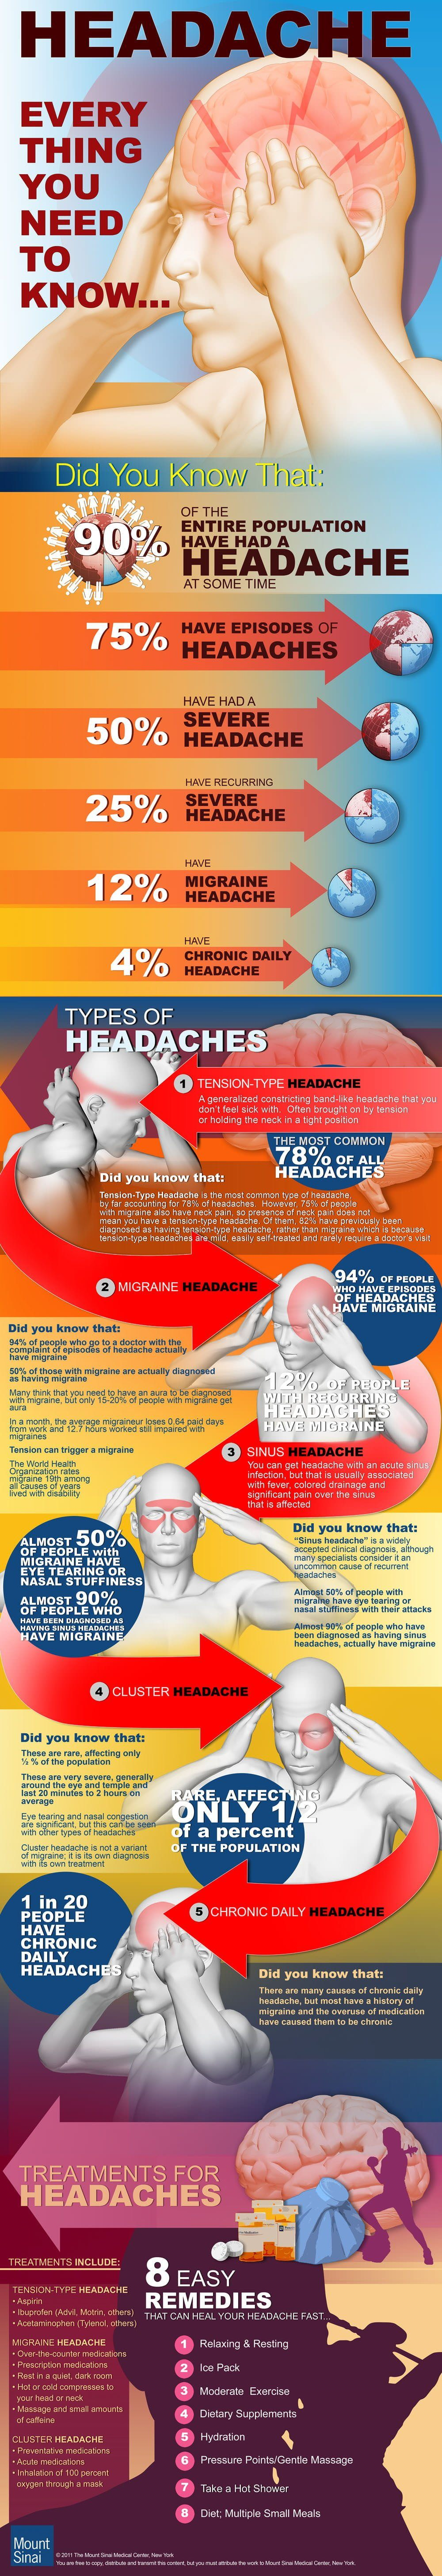 All About Headaches Infographic